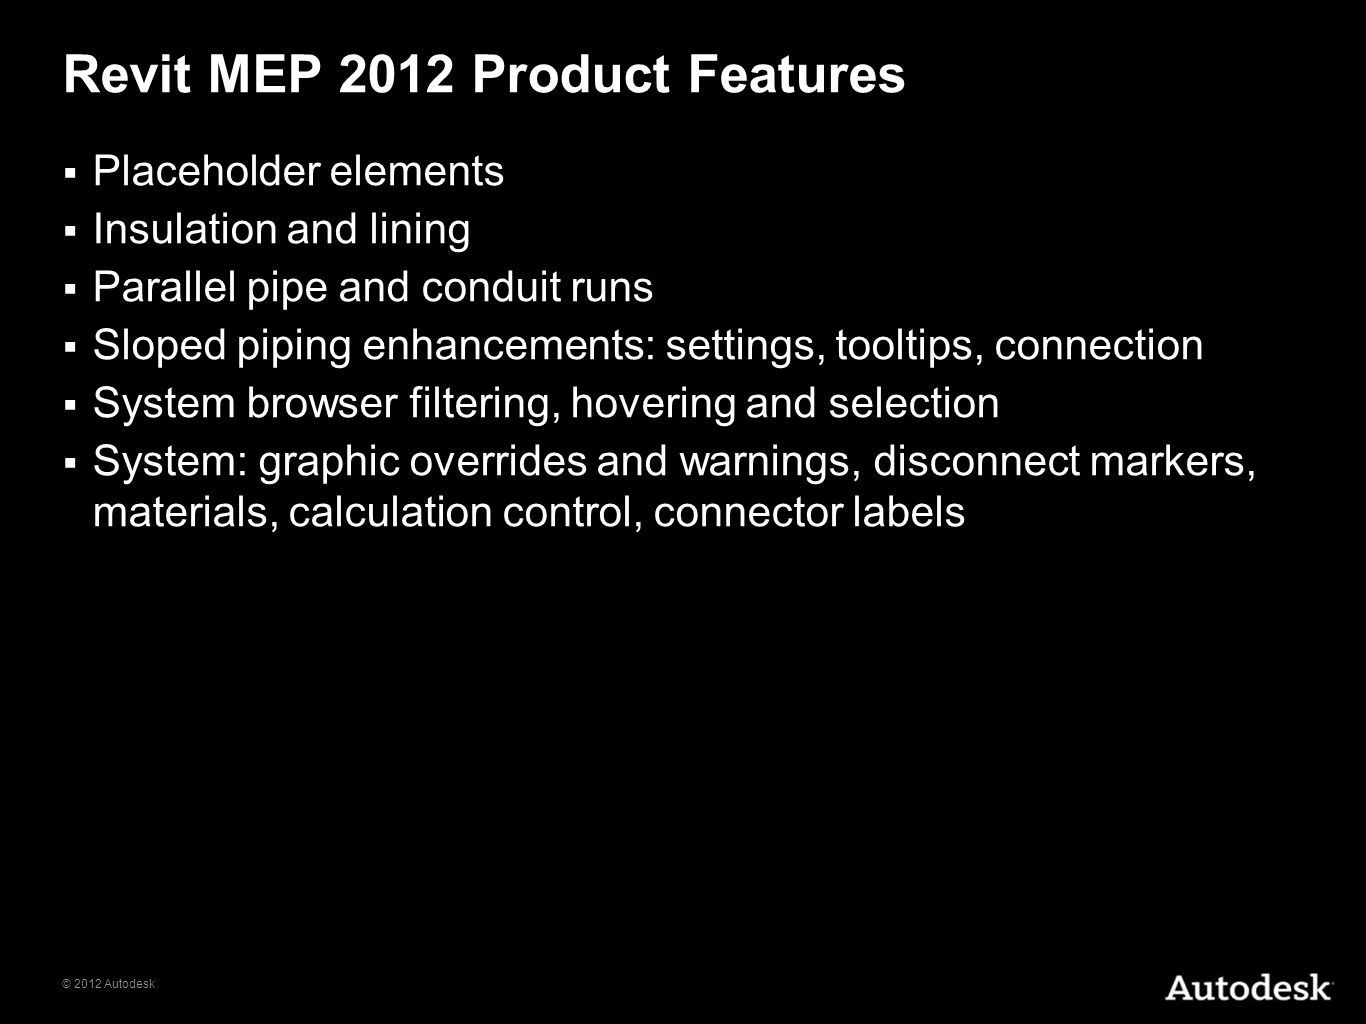 Revit MEP 2012 Product Features